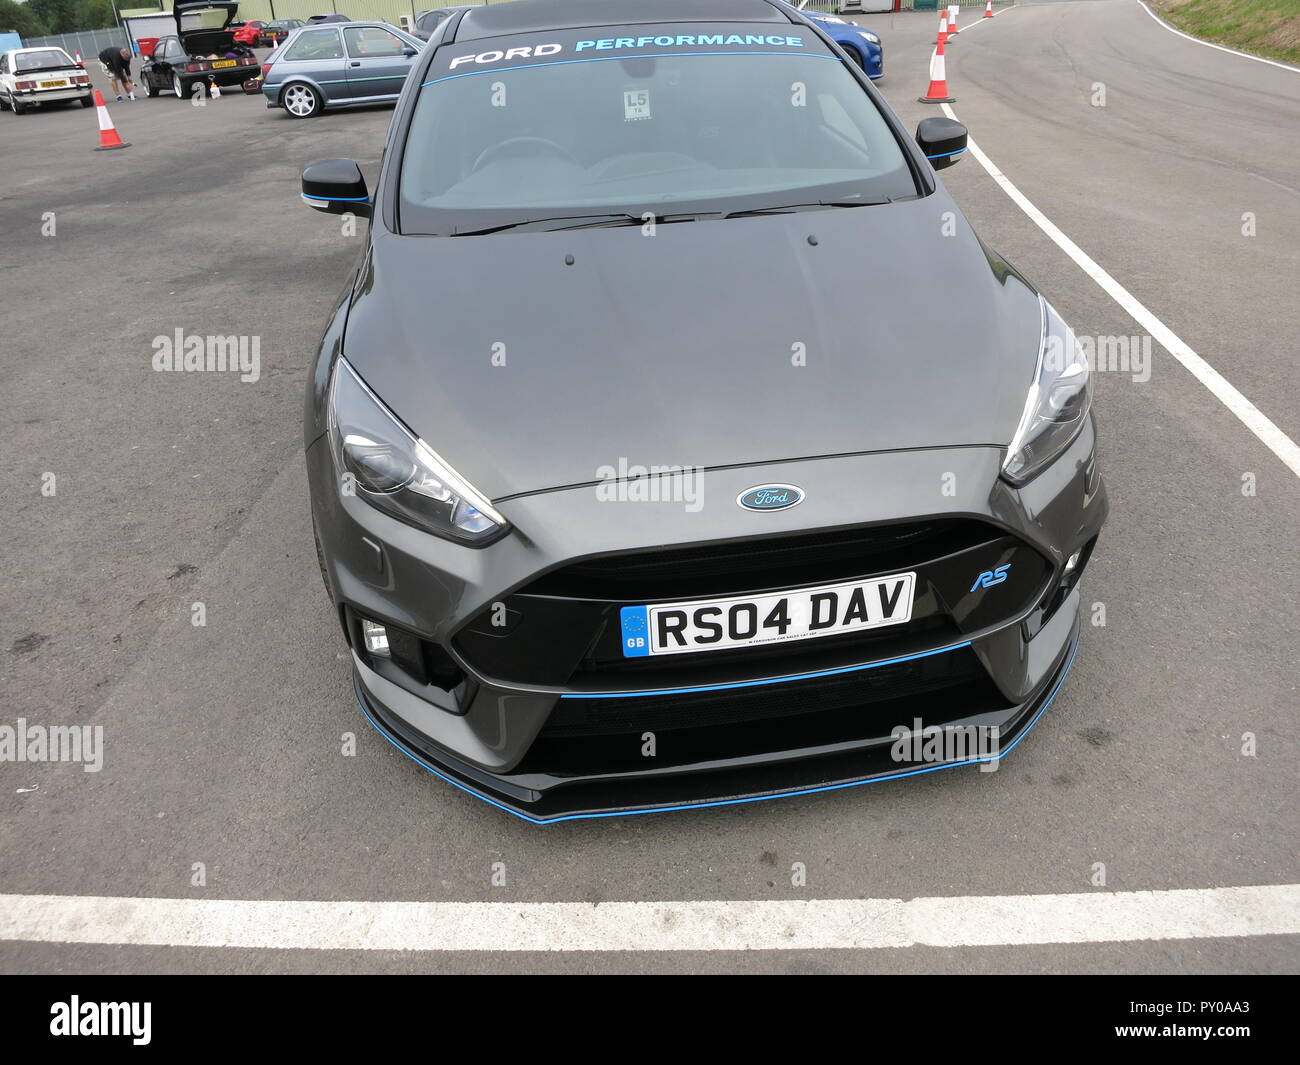 Ford Focus Rs Mk3 Modified In Grey On Show At The Rs Owners Club National Day At Donnington Park Race Circuit Showing Front View Stock Photo Alamy